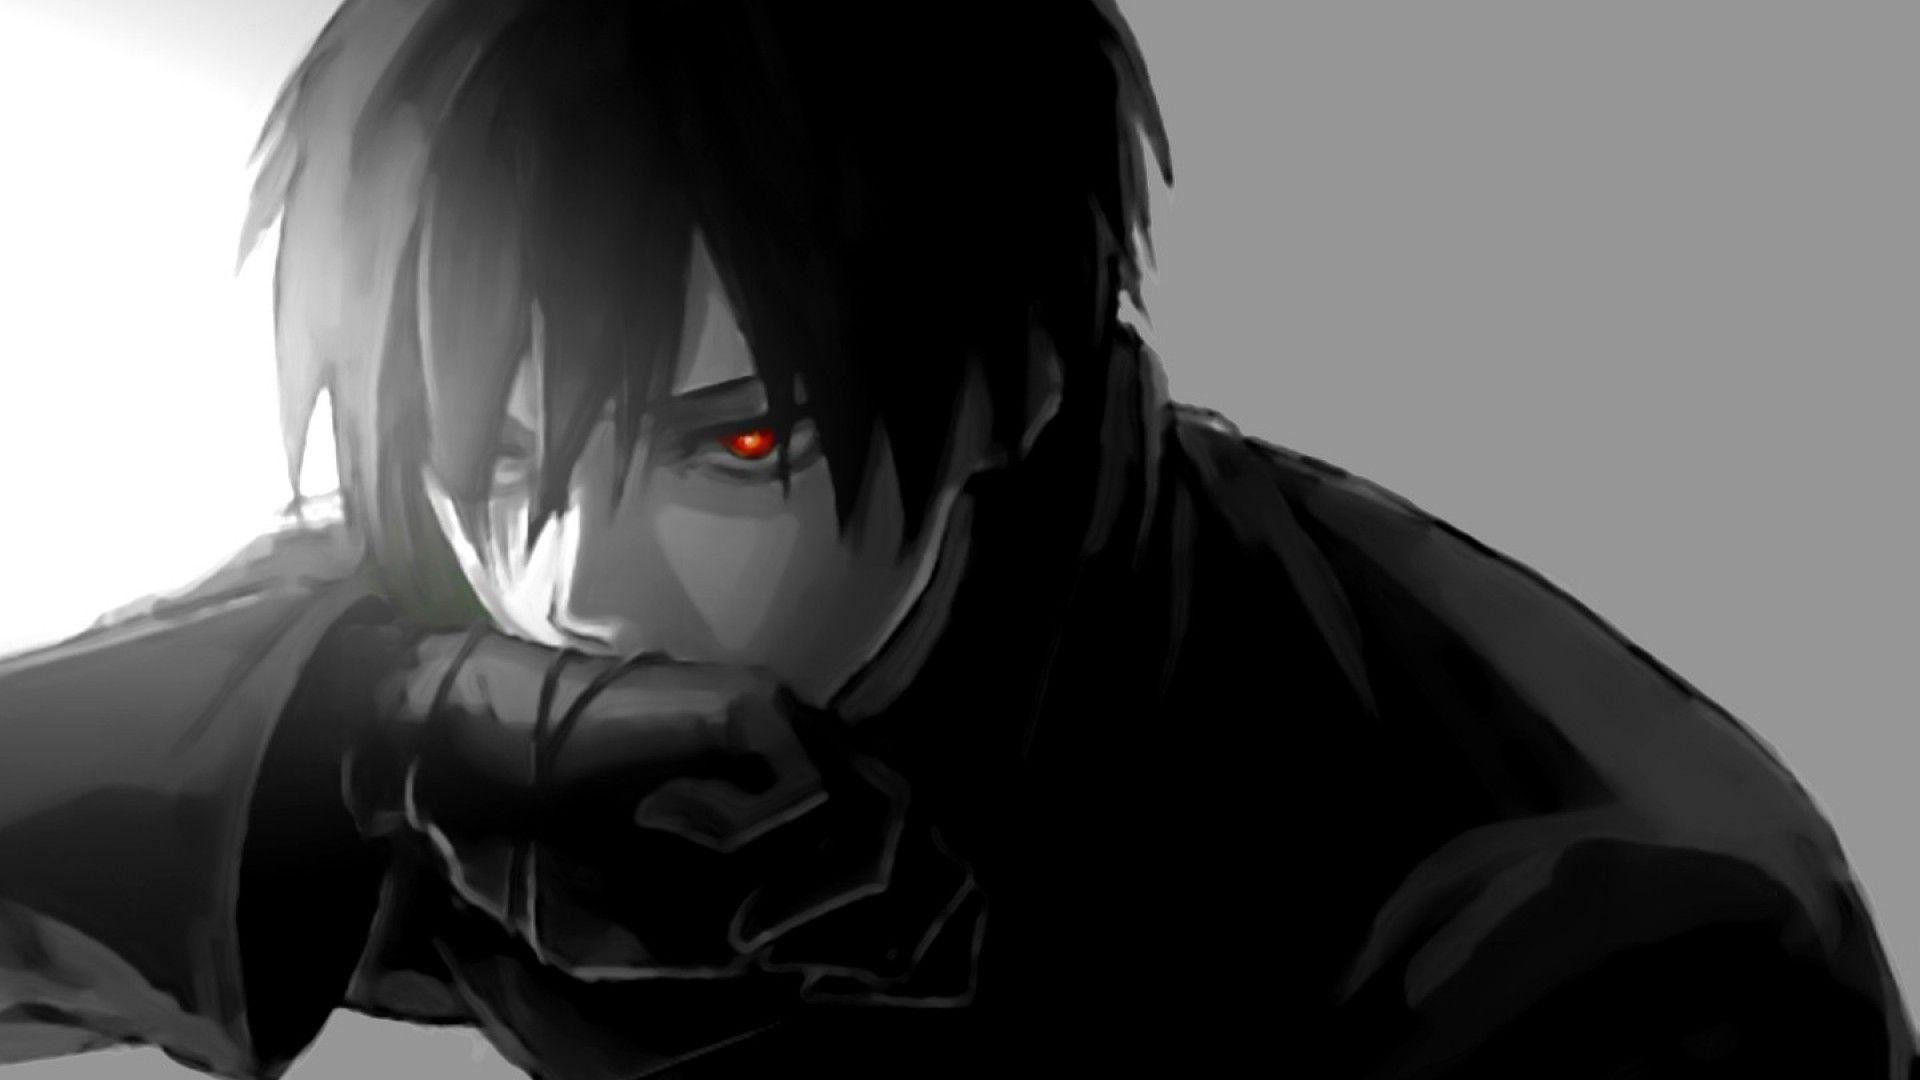 Hd Dark Anime Boy Wallpapers Wallpaper Cave